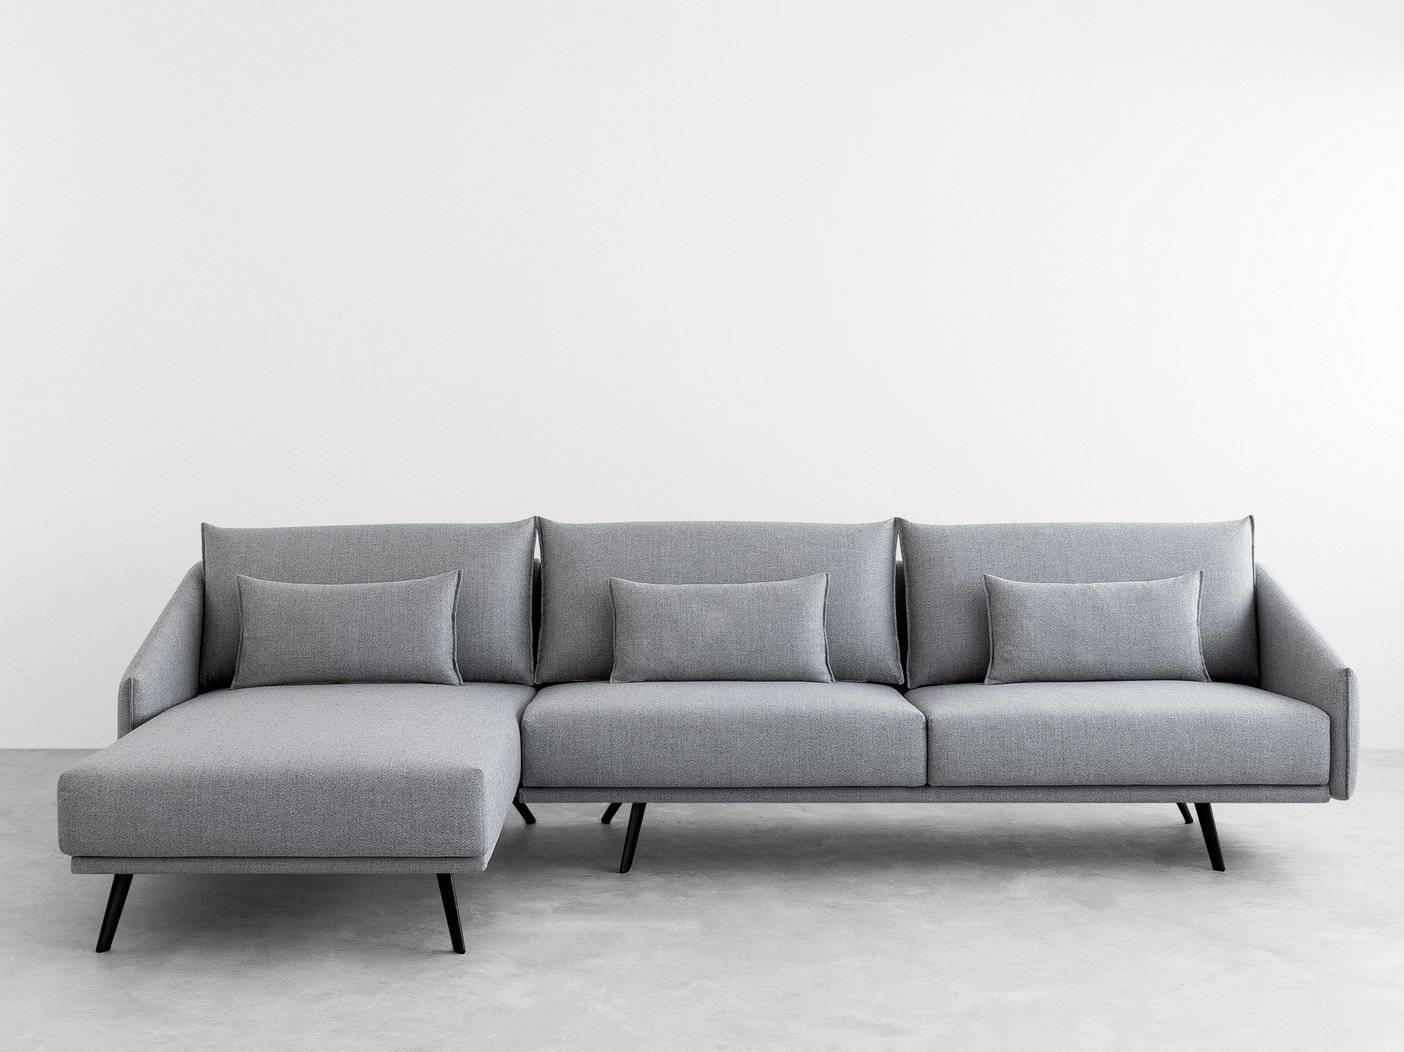 Costura sofa with chaise longue costura collection by stua for Chaise longue or chaise lounge